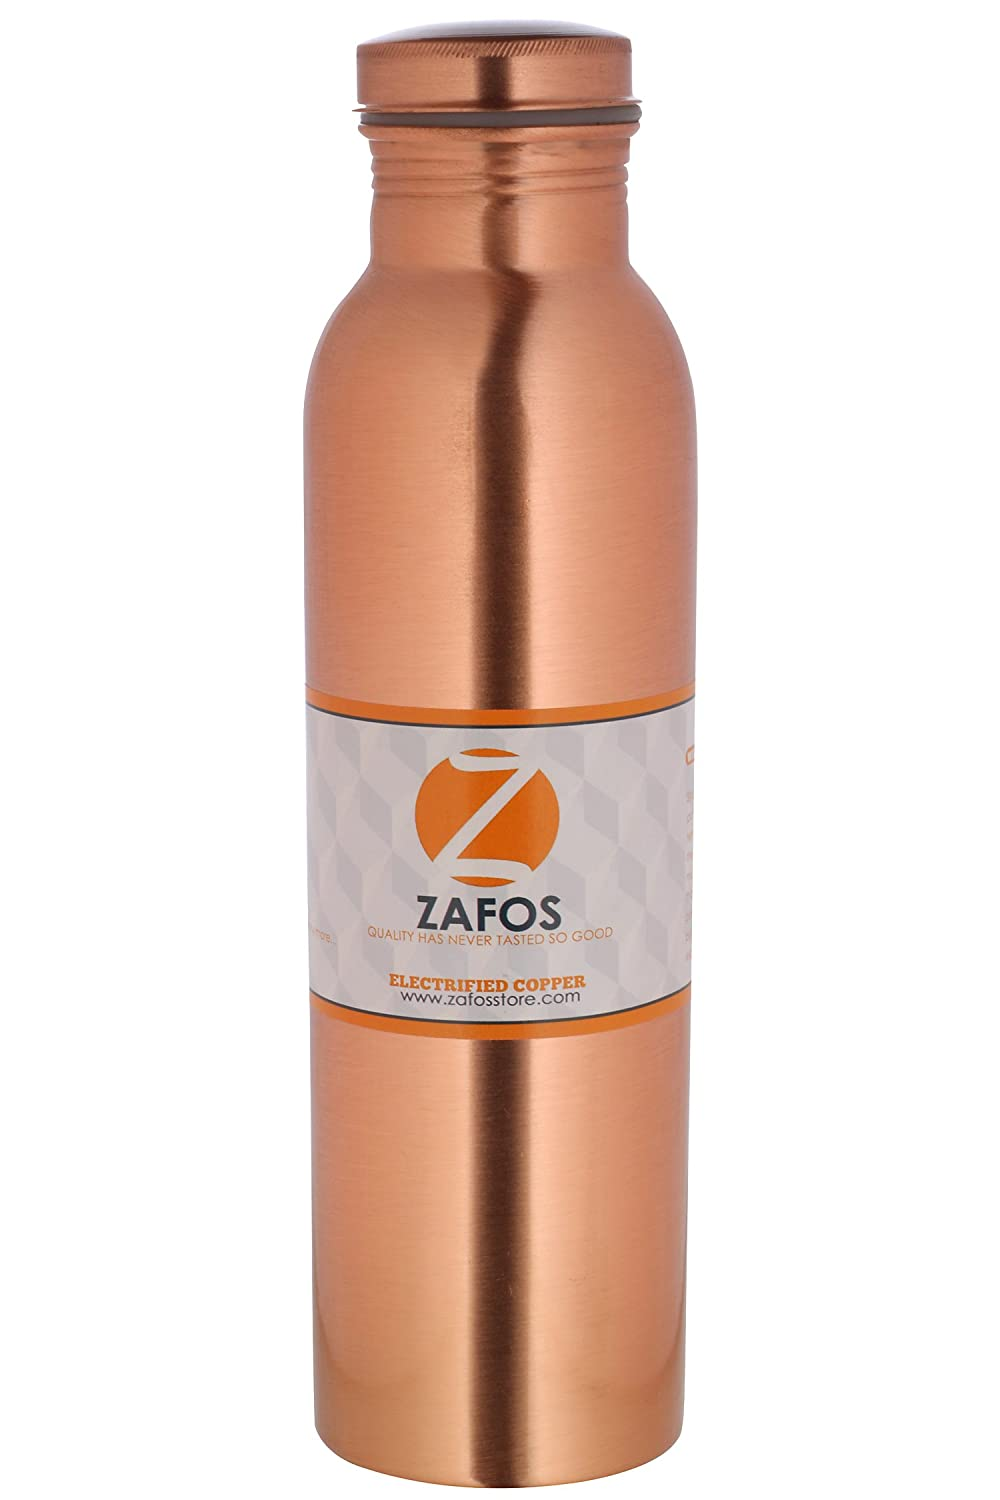 Zafos Copper Water Bottle, 1 Litre, Brown (PlainCopper-1L)